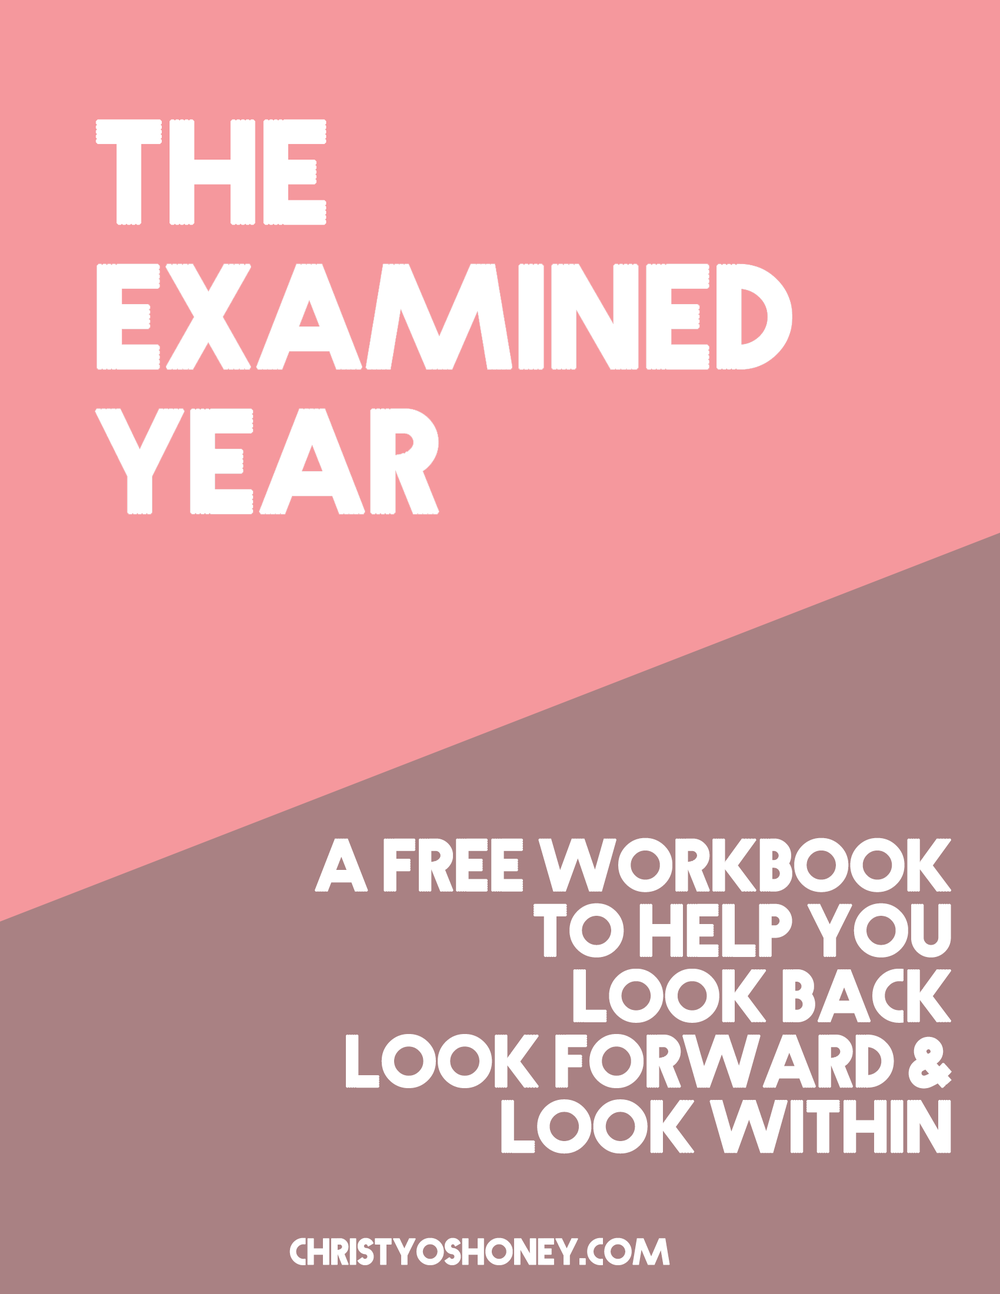 Struggling to process your year? Use this guide to help you look back on your last 365 days, look forward to the days ahead, and look within yourself. Click through to grab your free copy!